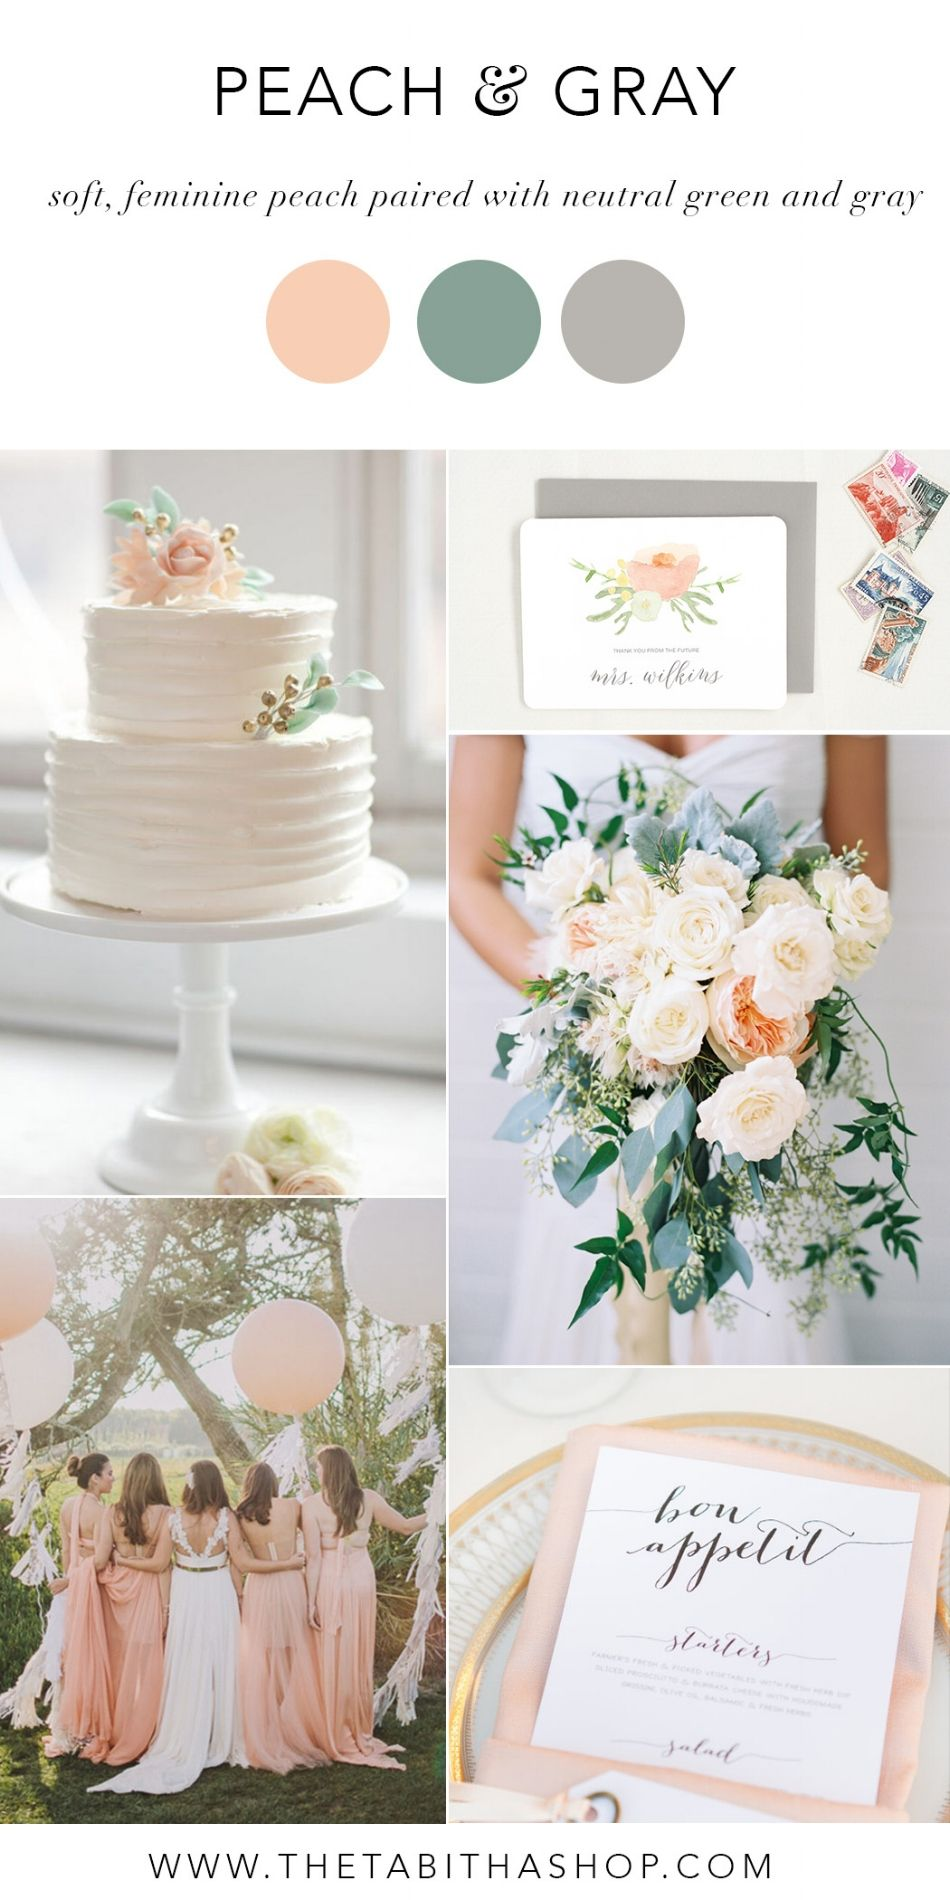 Peach and Gray Wedding Inspiration  — Tabitha & Lace